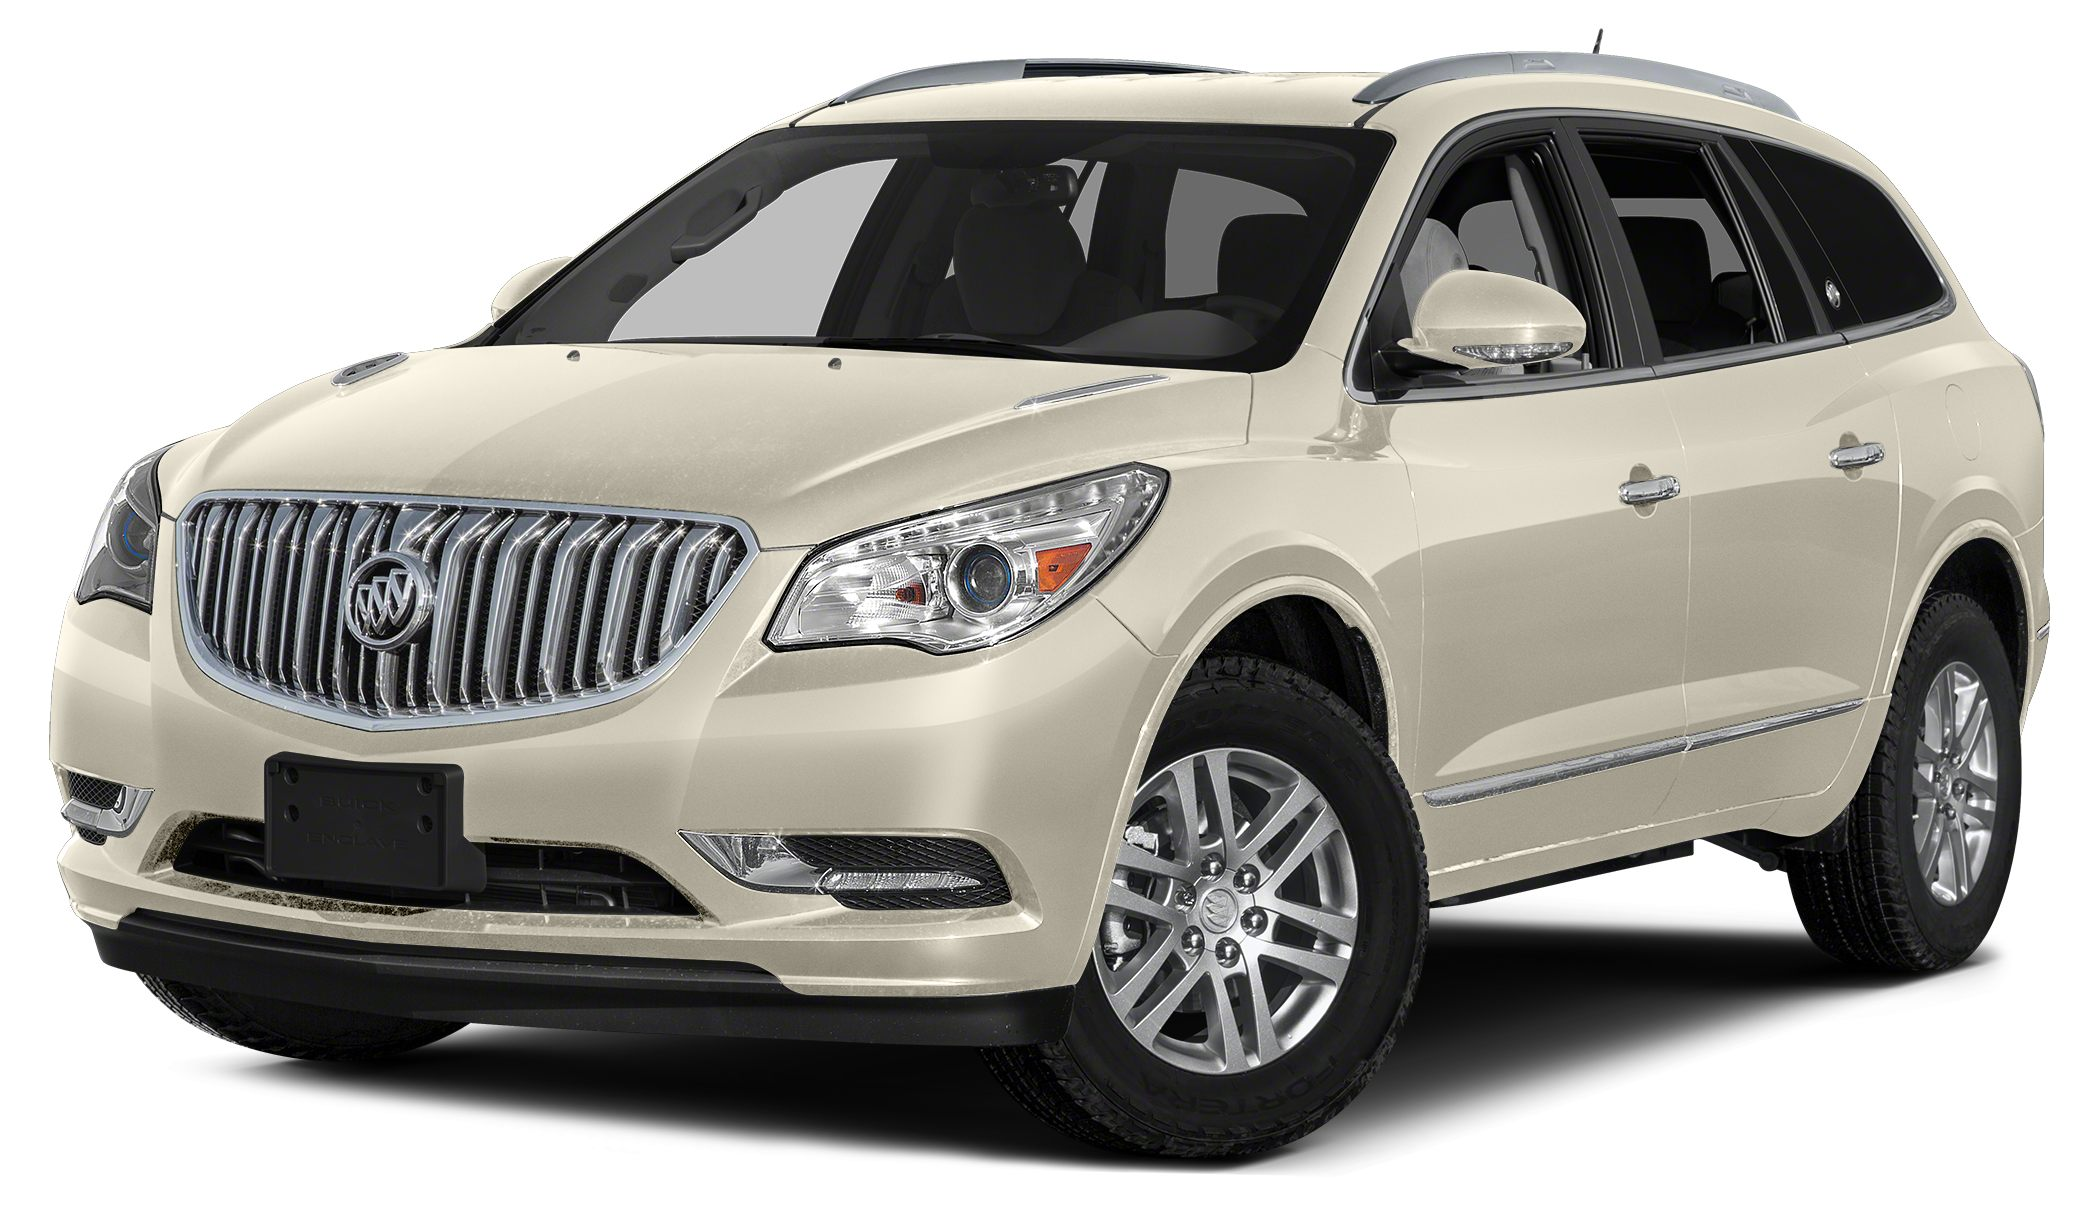 2015 Buick Enclave Premium Snatch a score on this 2015 Buick Enclave Premium before its too late